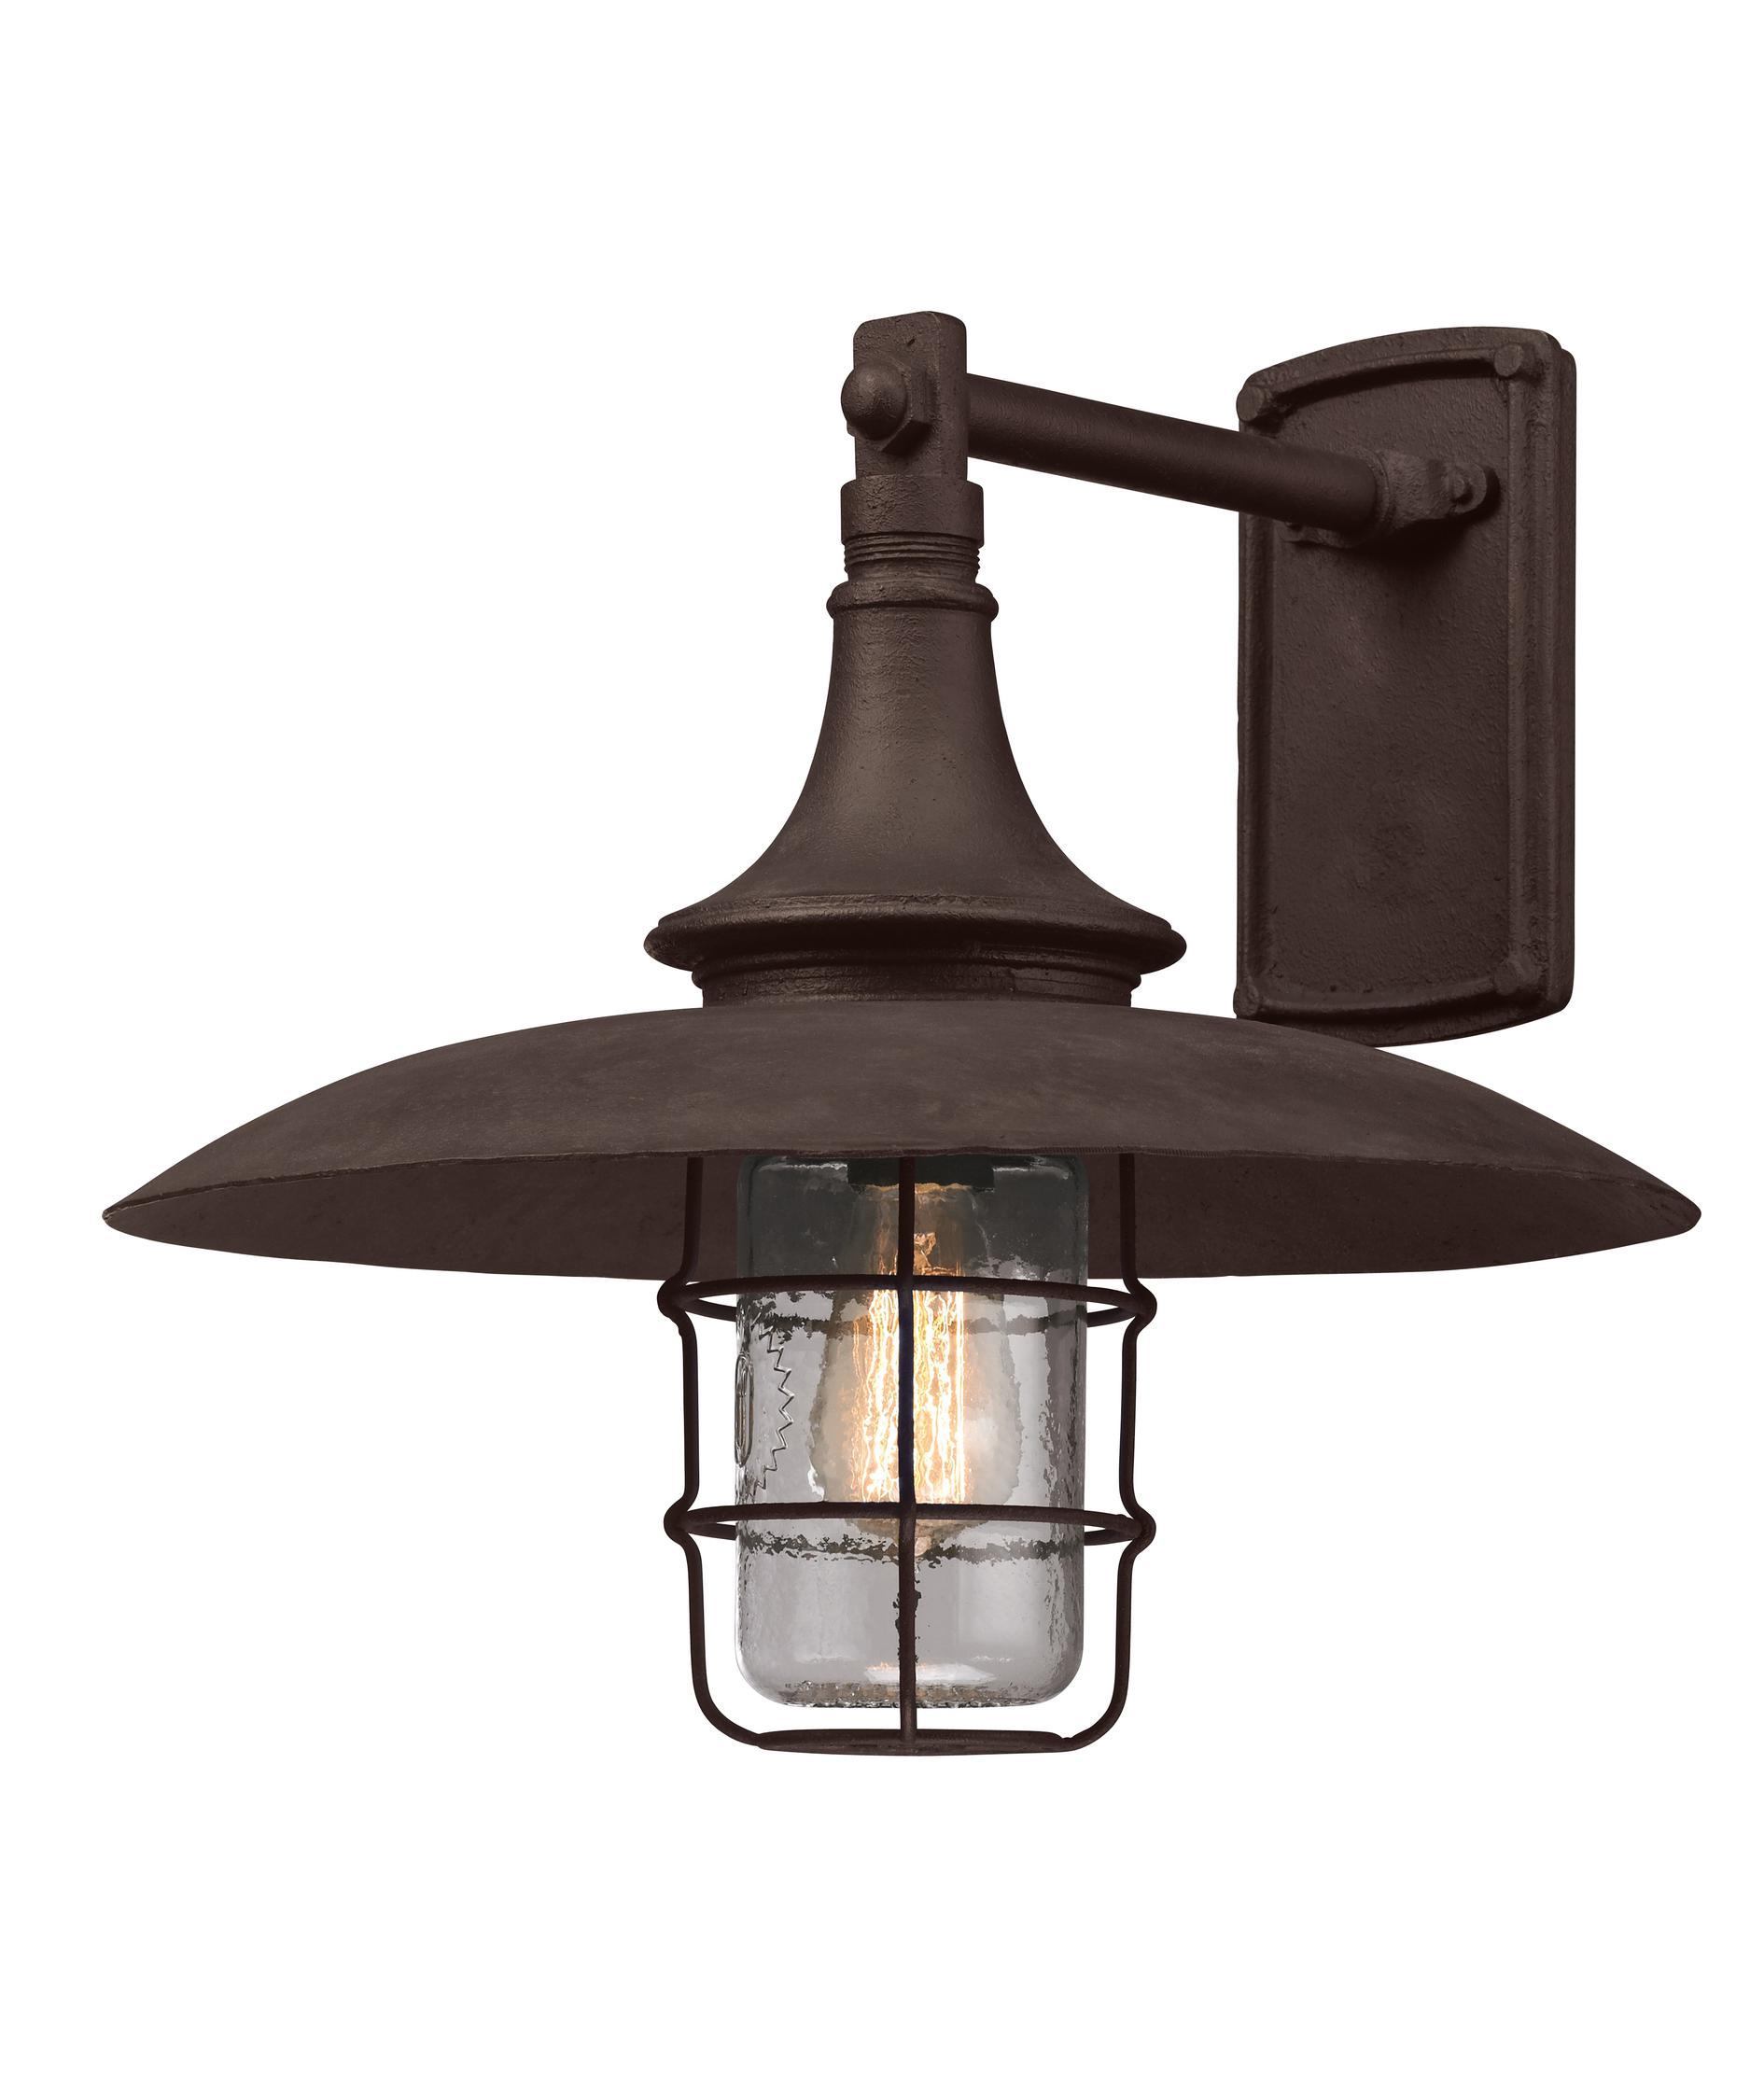 Troy Lighting B3222 Allegany 16 Inch Wide 1 Light Outdoor Wall ...